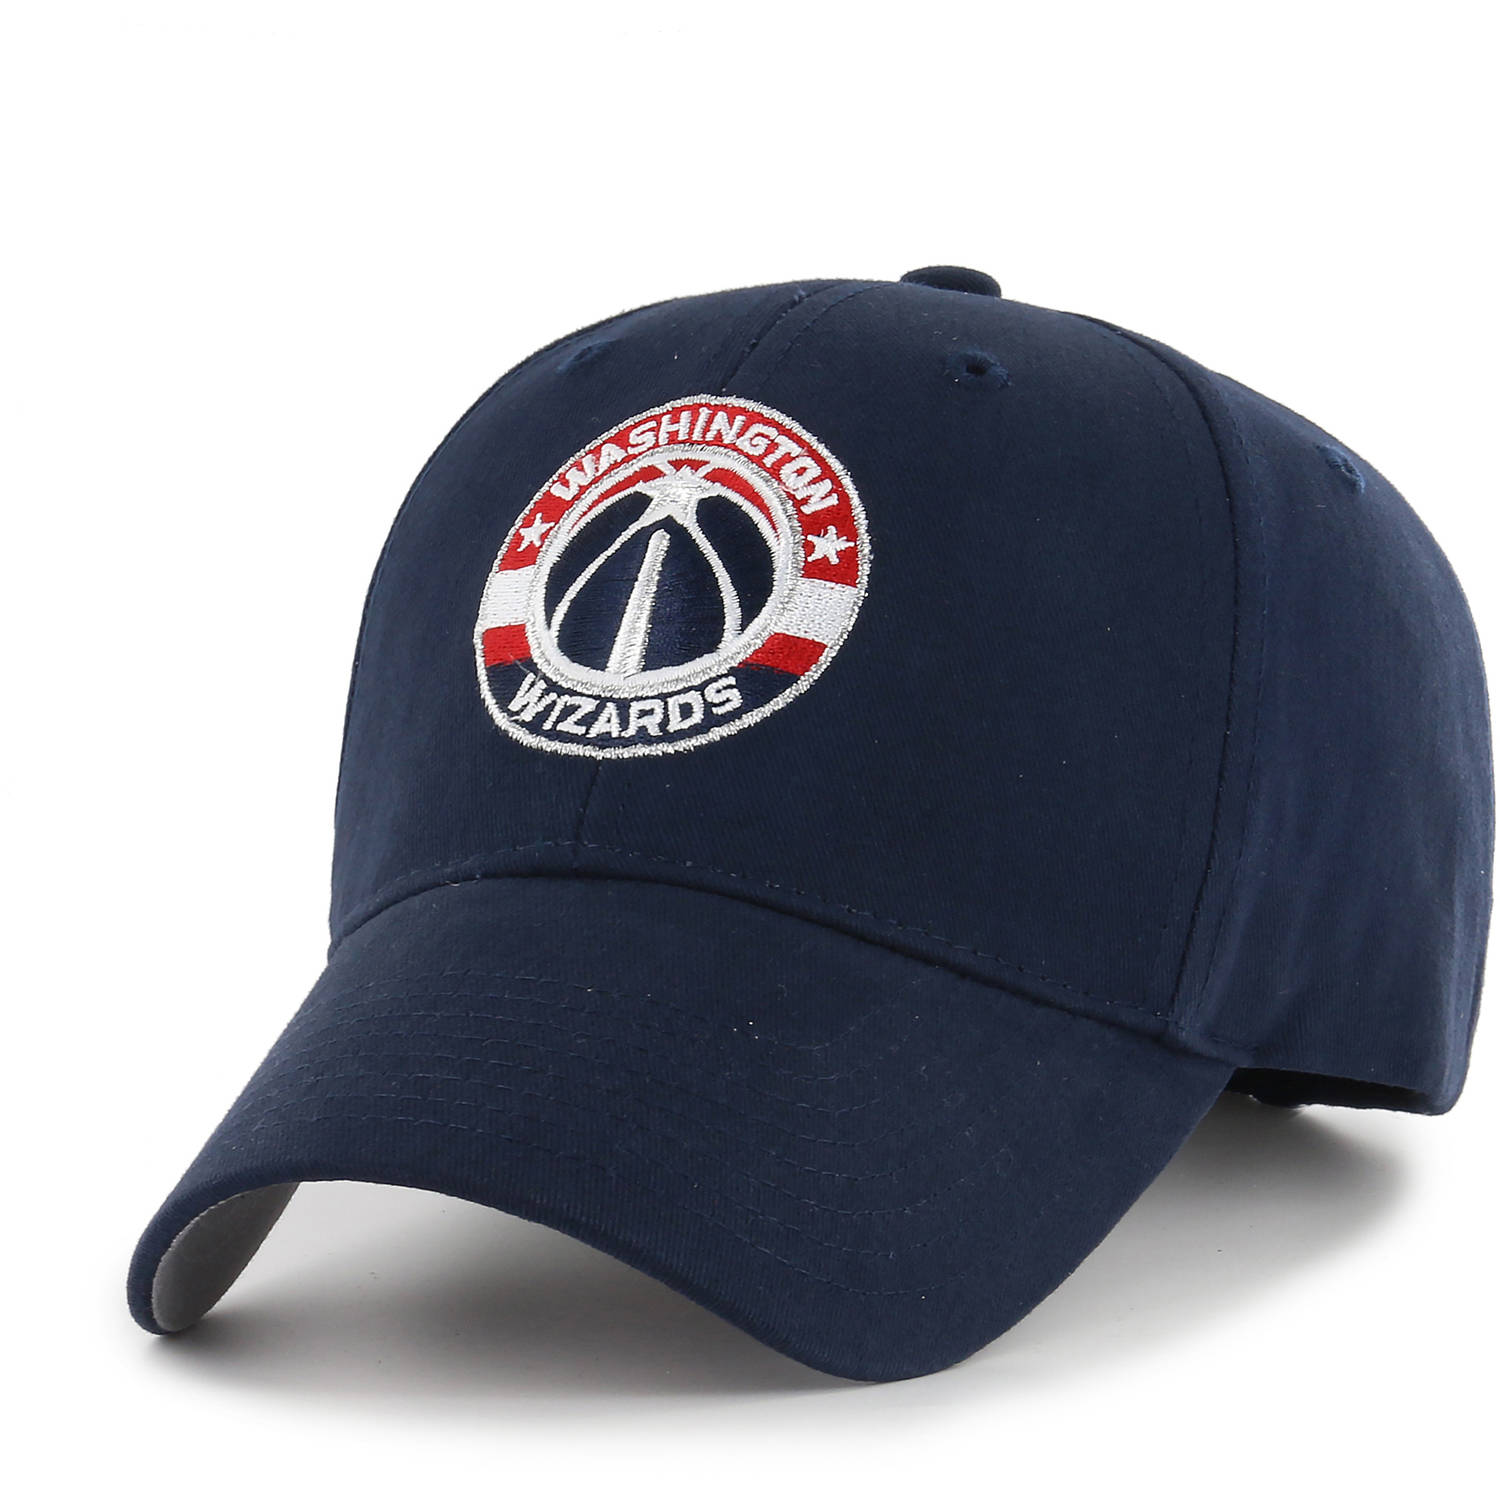 NBA Washington Wizards Basic Cap/Hat - Fan Favorite